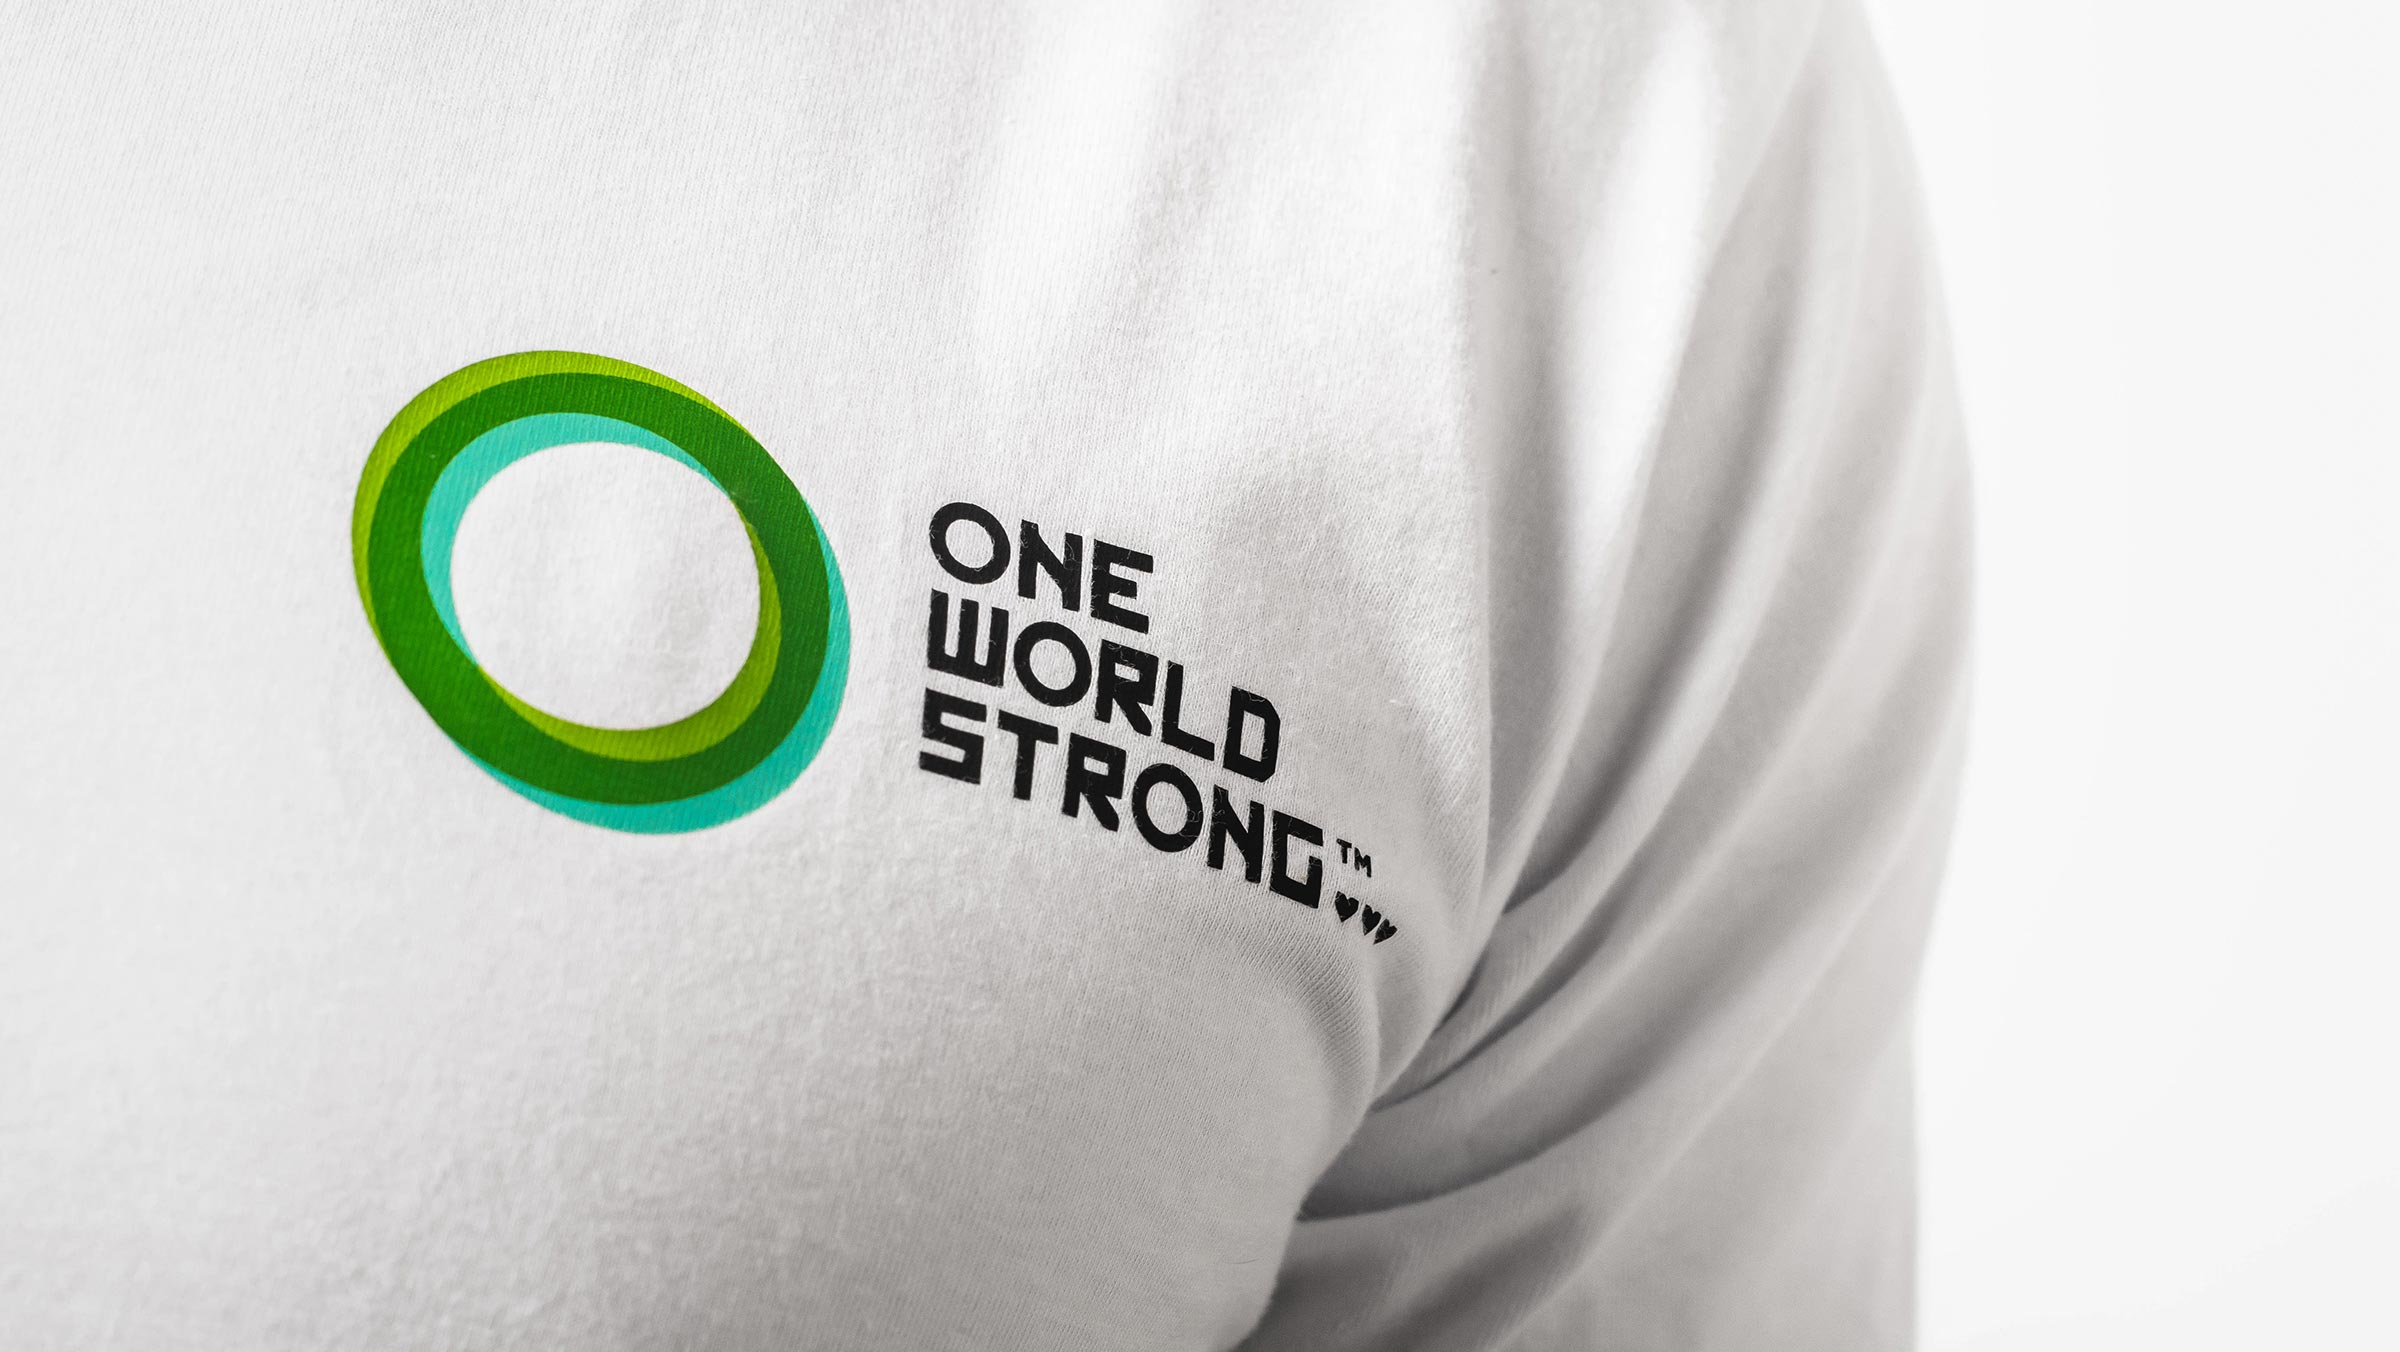 One World Strong